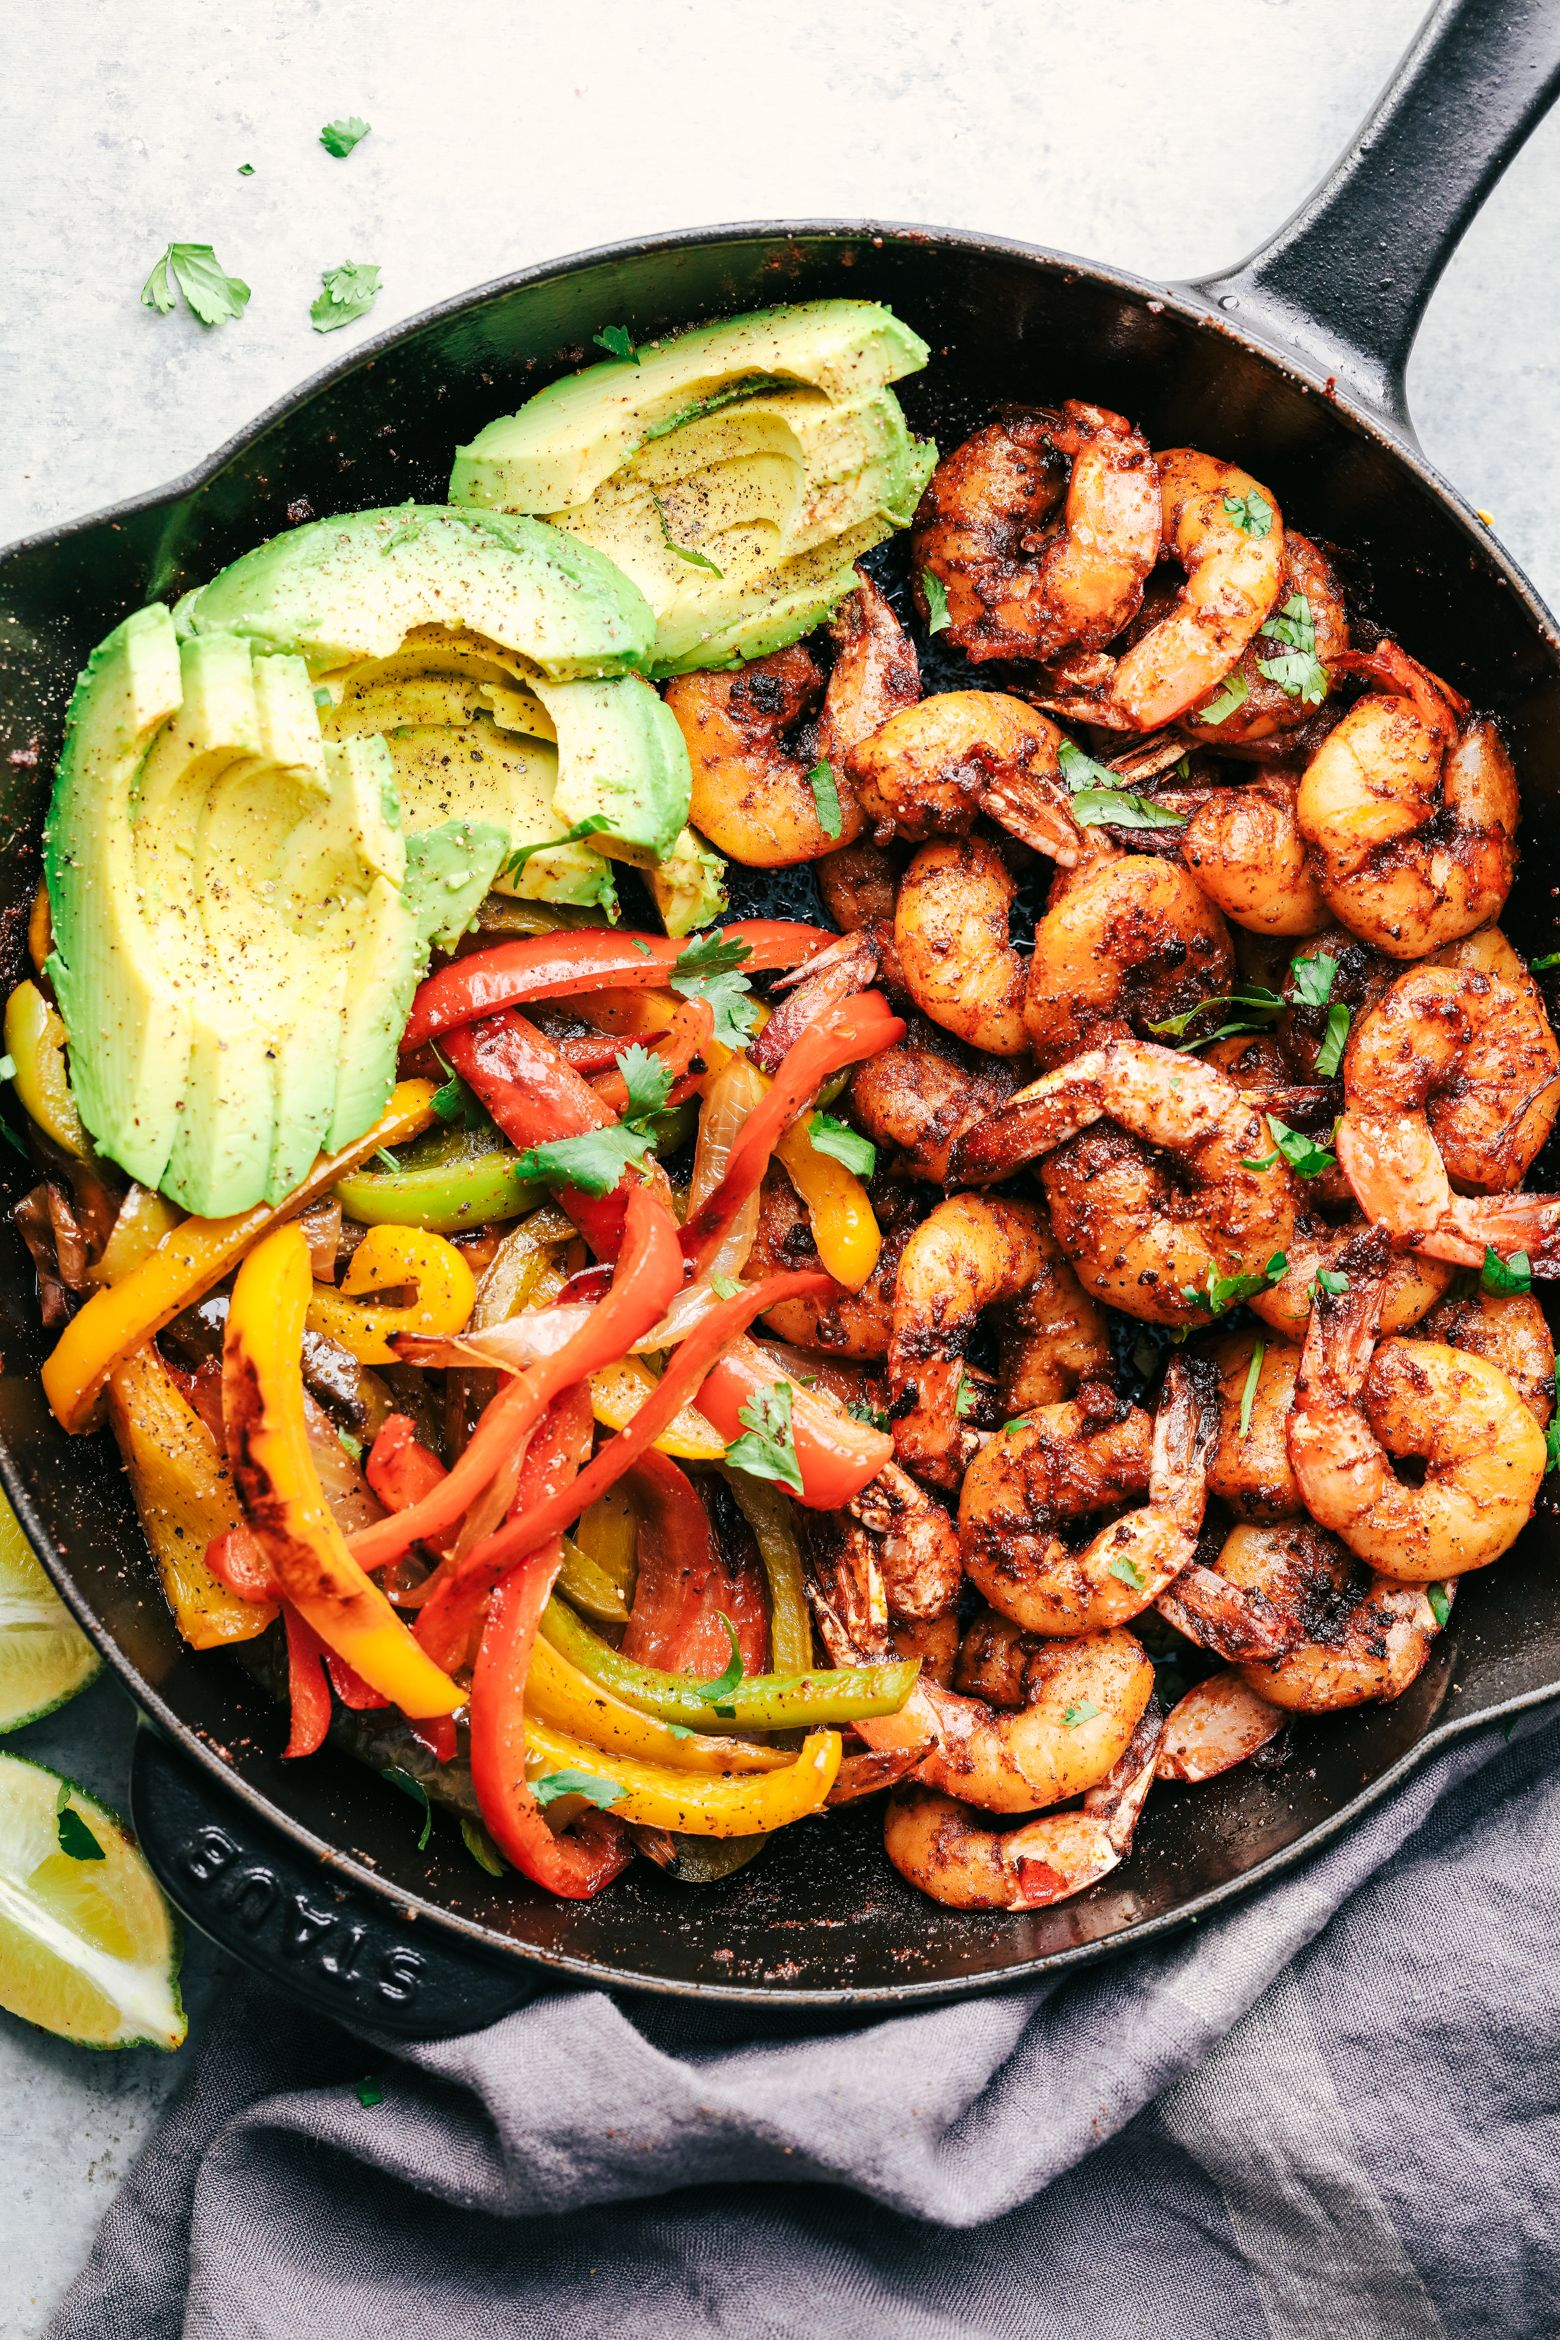 20 Minute Skillet Blackened Shrimp Fajitas | The Recipe Critic